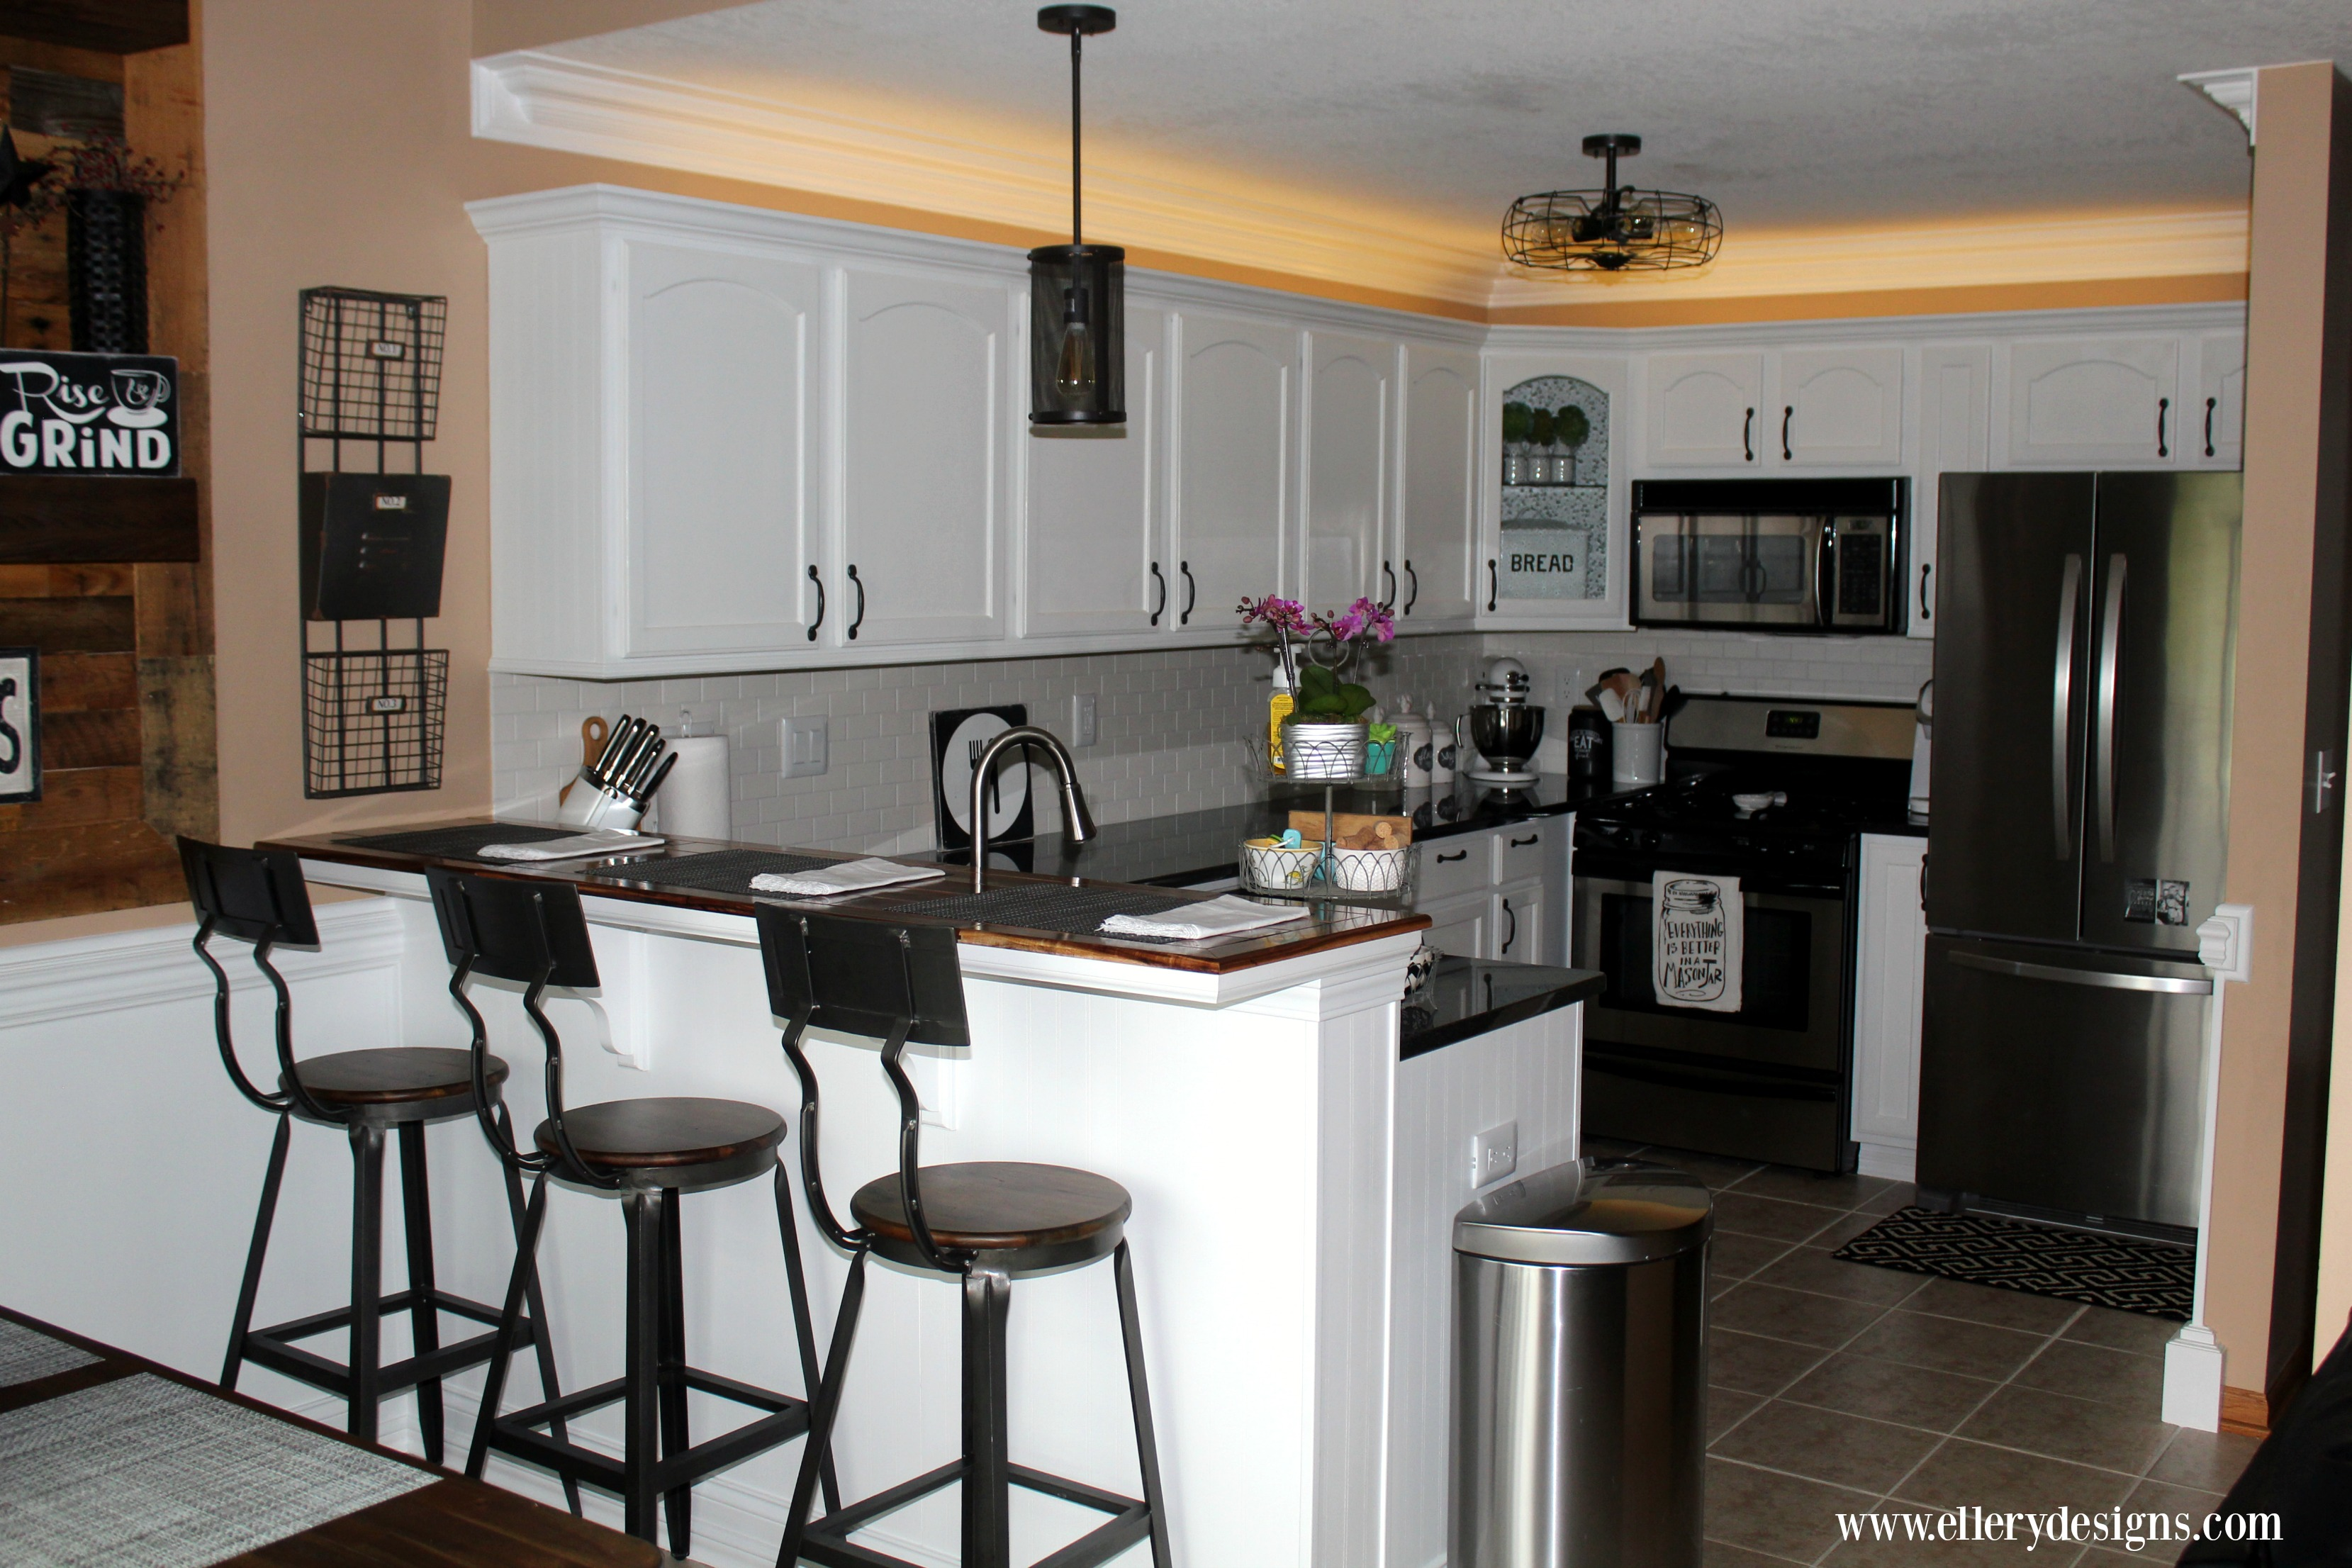 Our DIY Kitchen Remodel - The Full Reveal - Ellery Designs